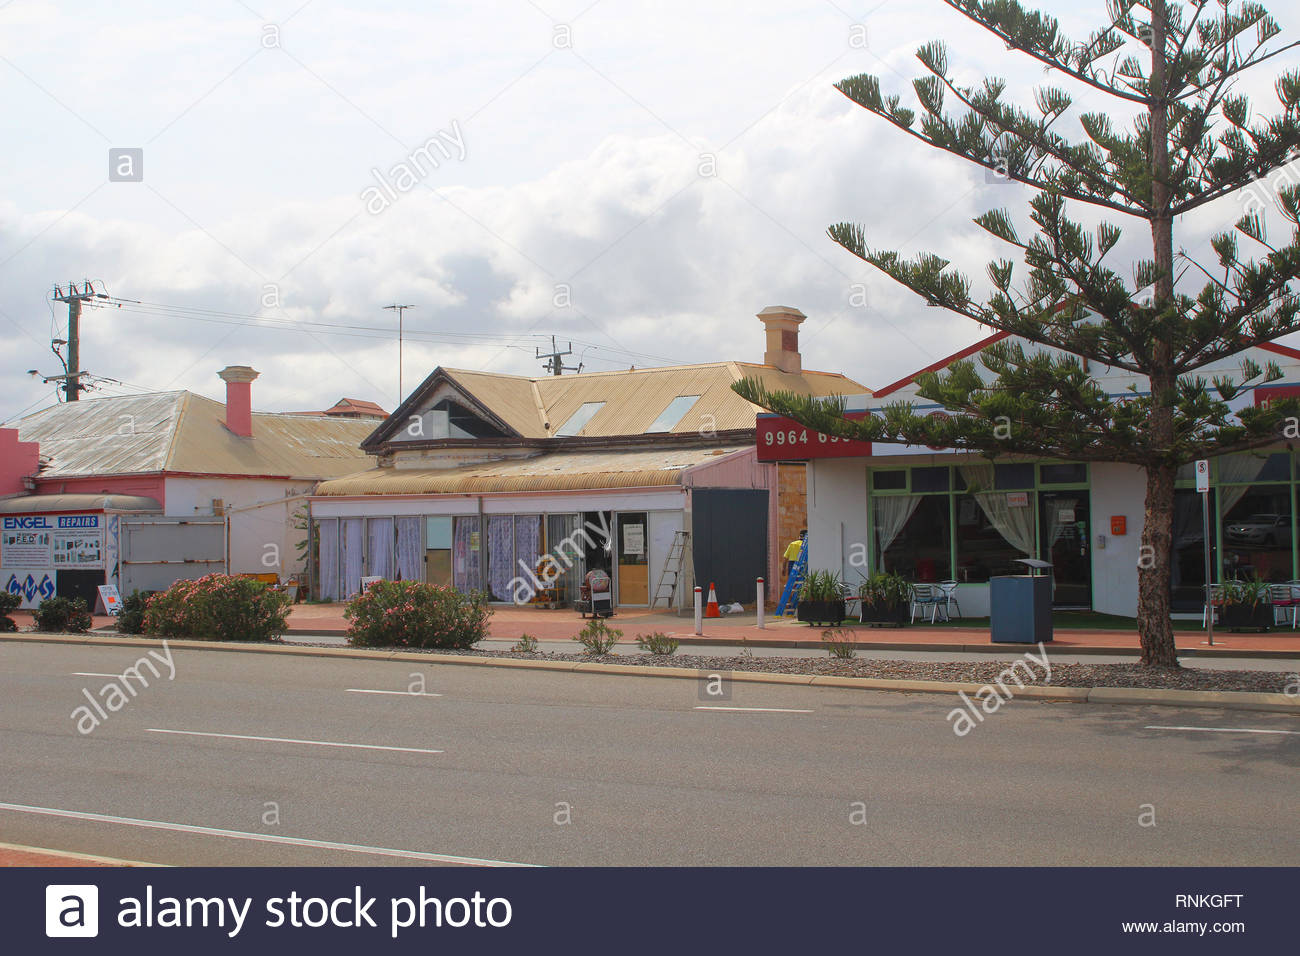 Geraldton / Australia: Coastal town in Western Australia - Cafe and shops at the main street - Stock Image